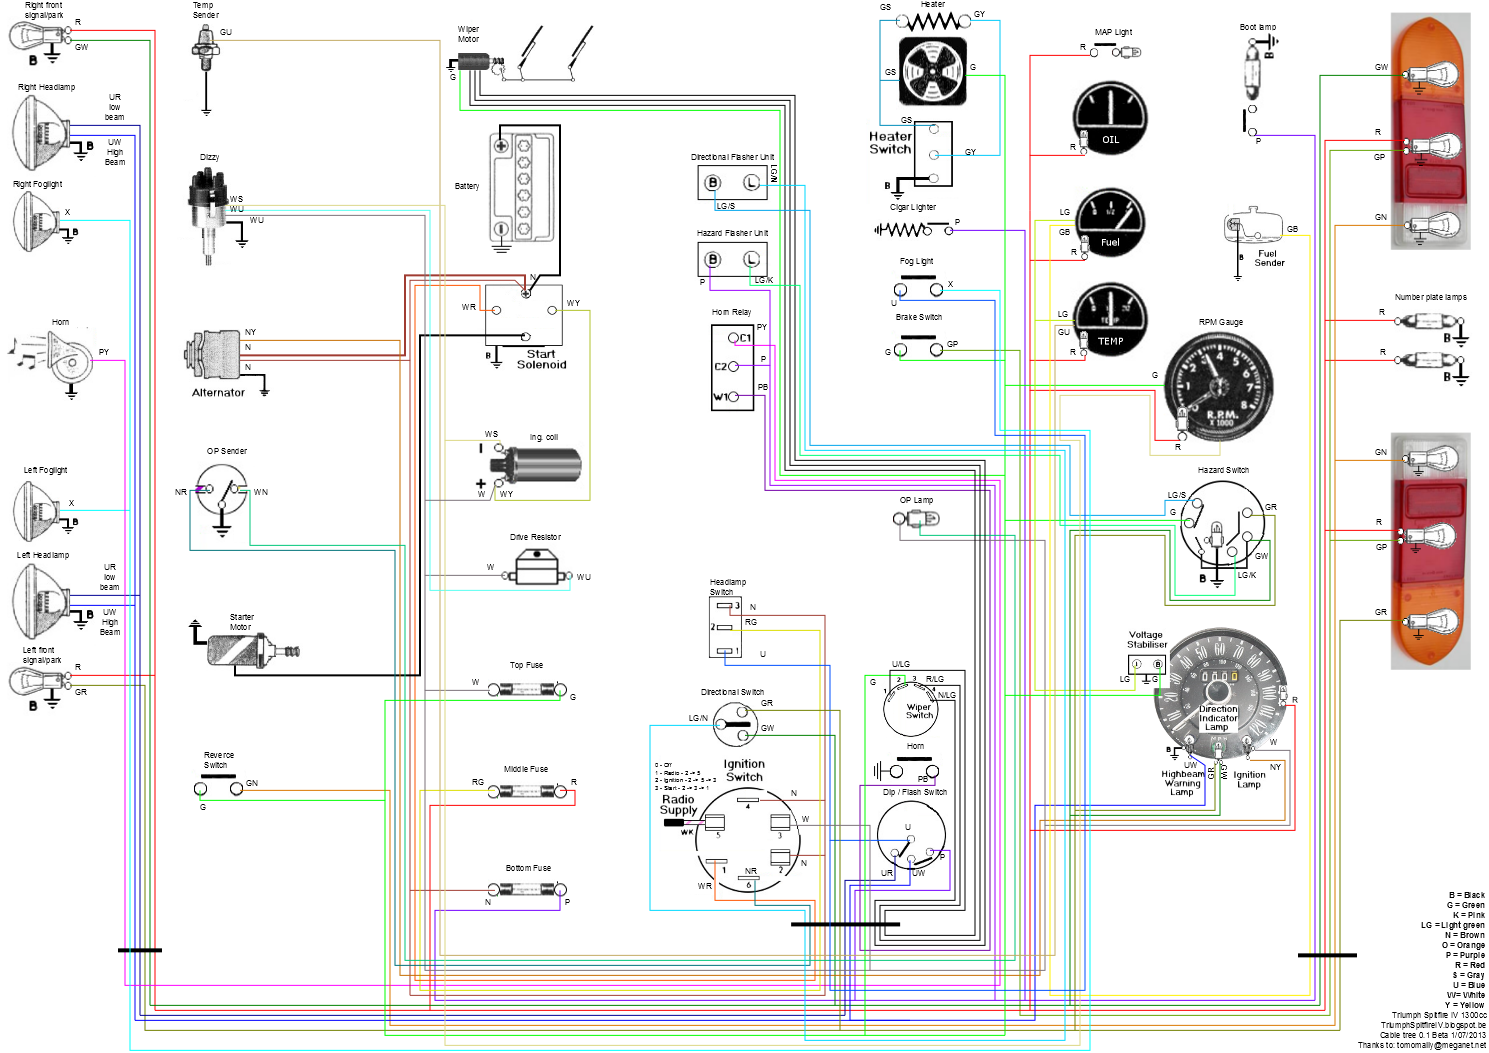 spitfire iv wiring diagram morris minor wiring diagram wiring diagram simonand morris minor wiring diagram at mifinder.co